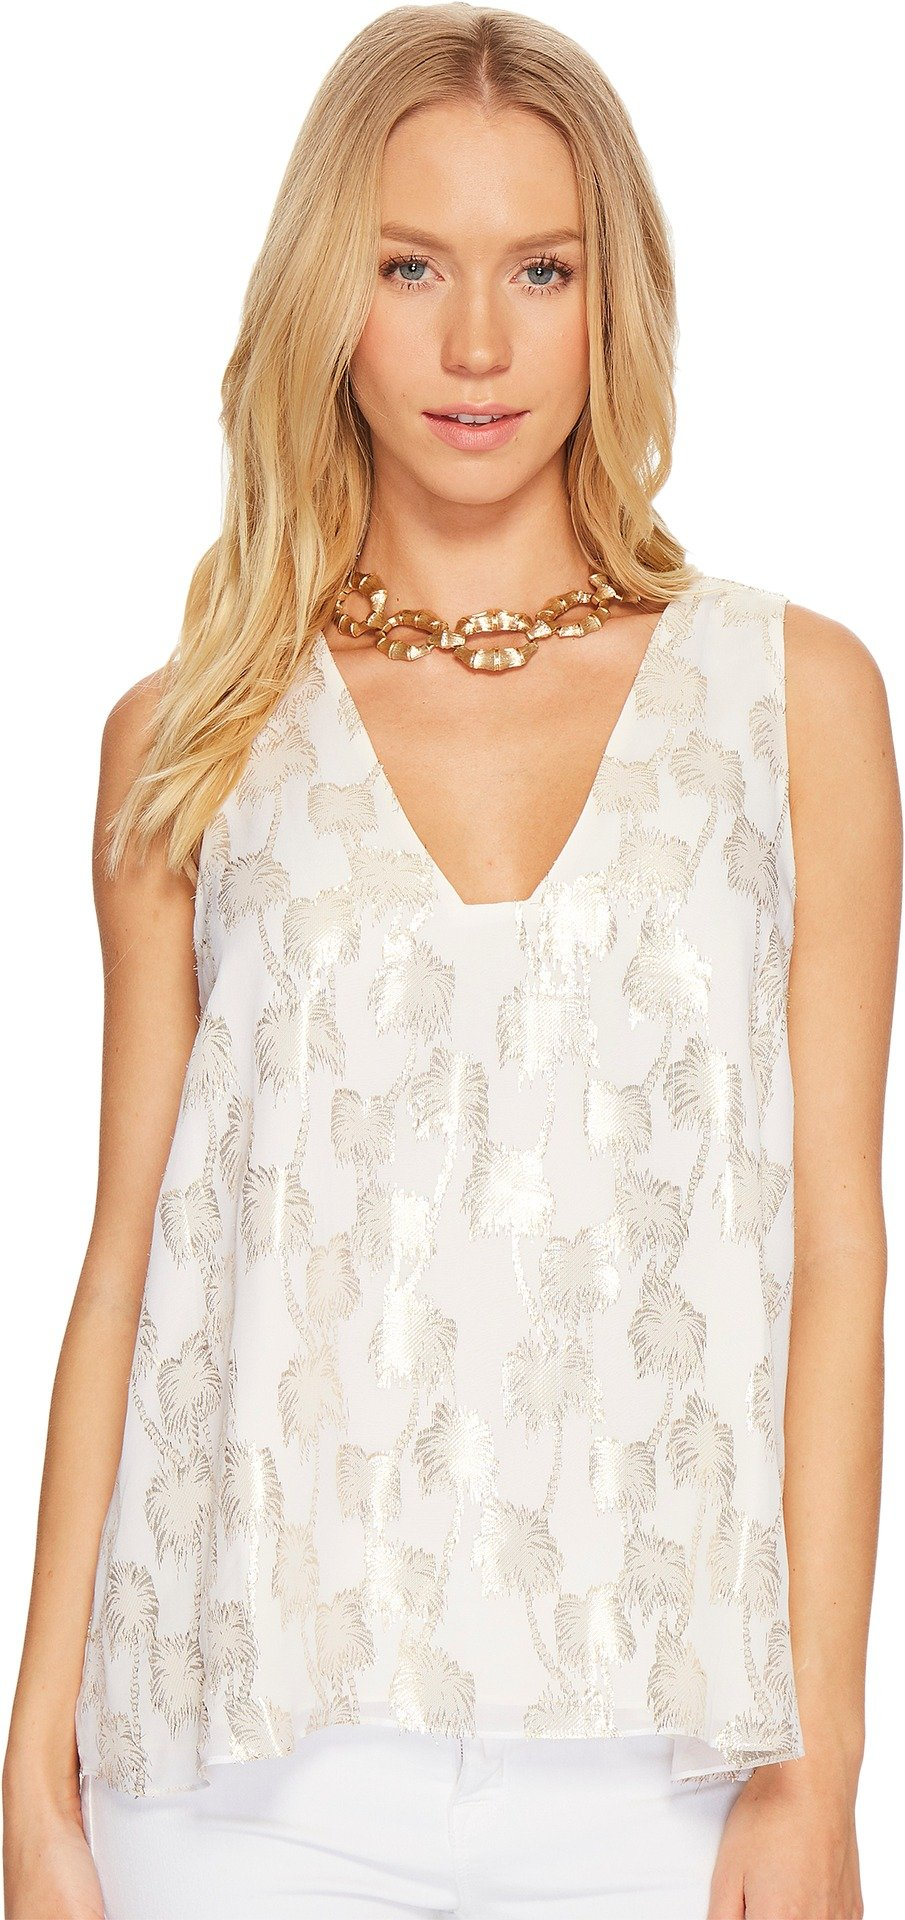 Lilly Pulitzer Women's Owen Silk Clip Top Resort White Metallic Palm Tree Clip Jacquard X-Small